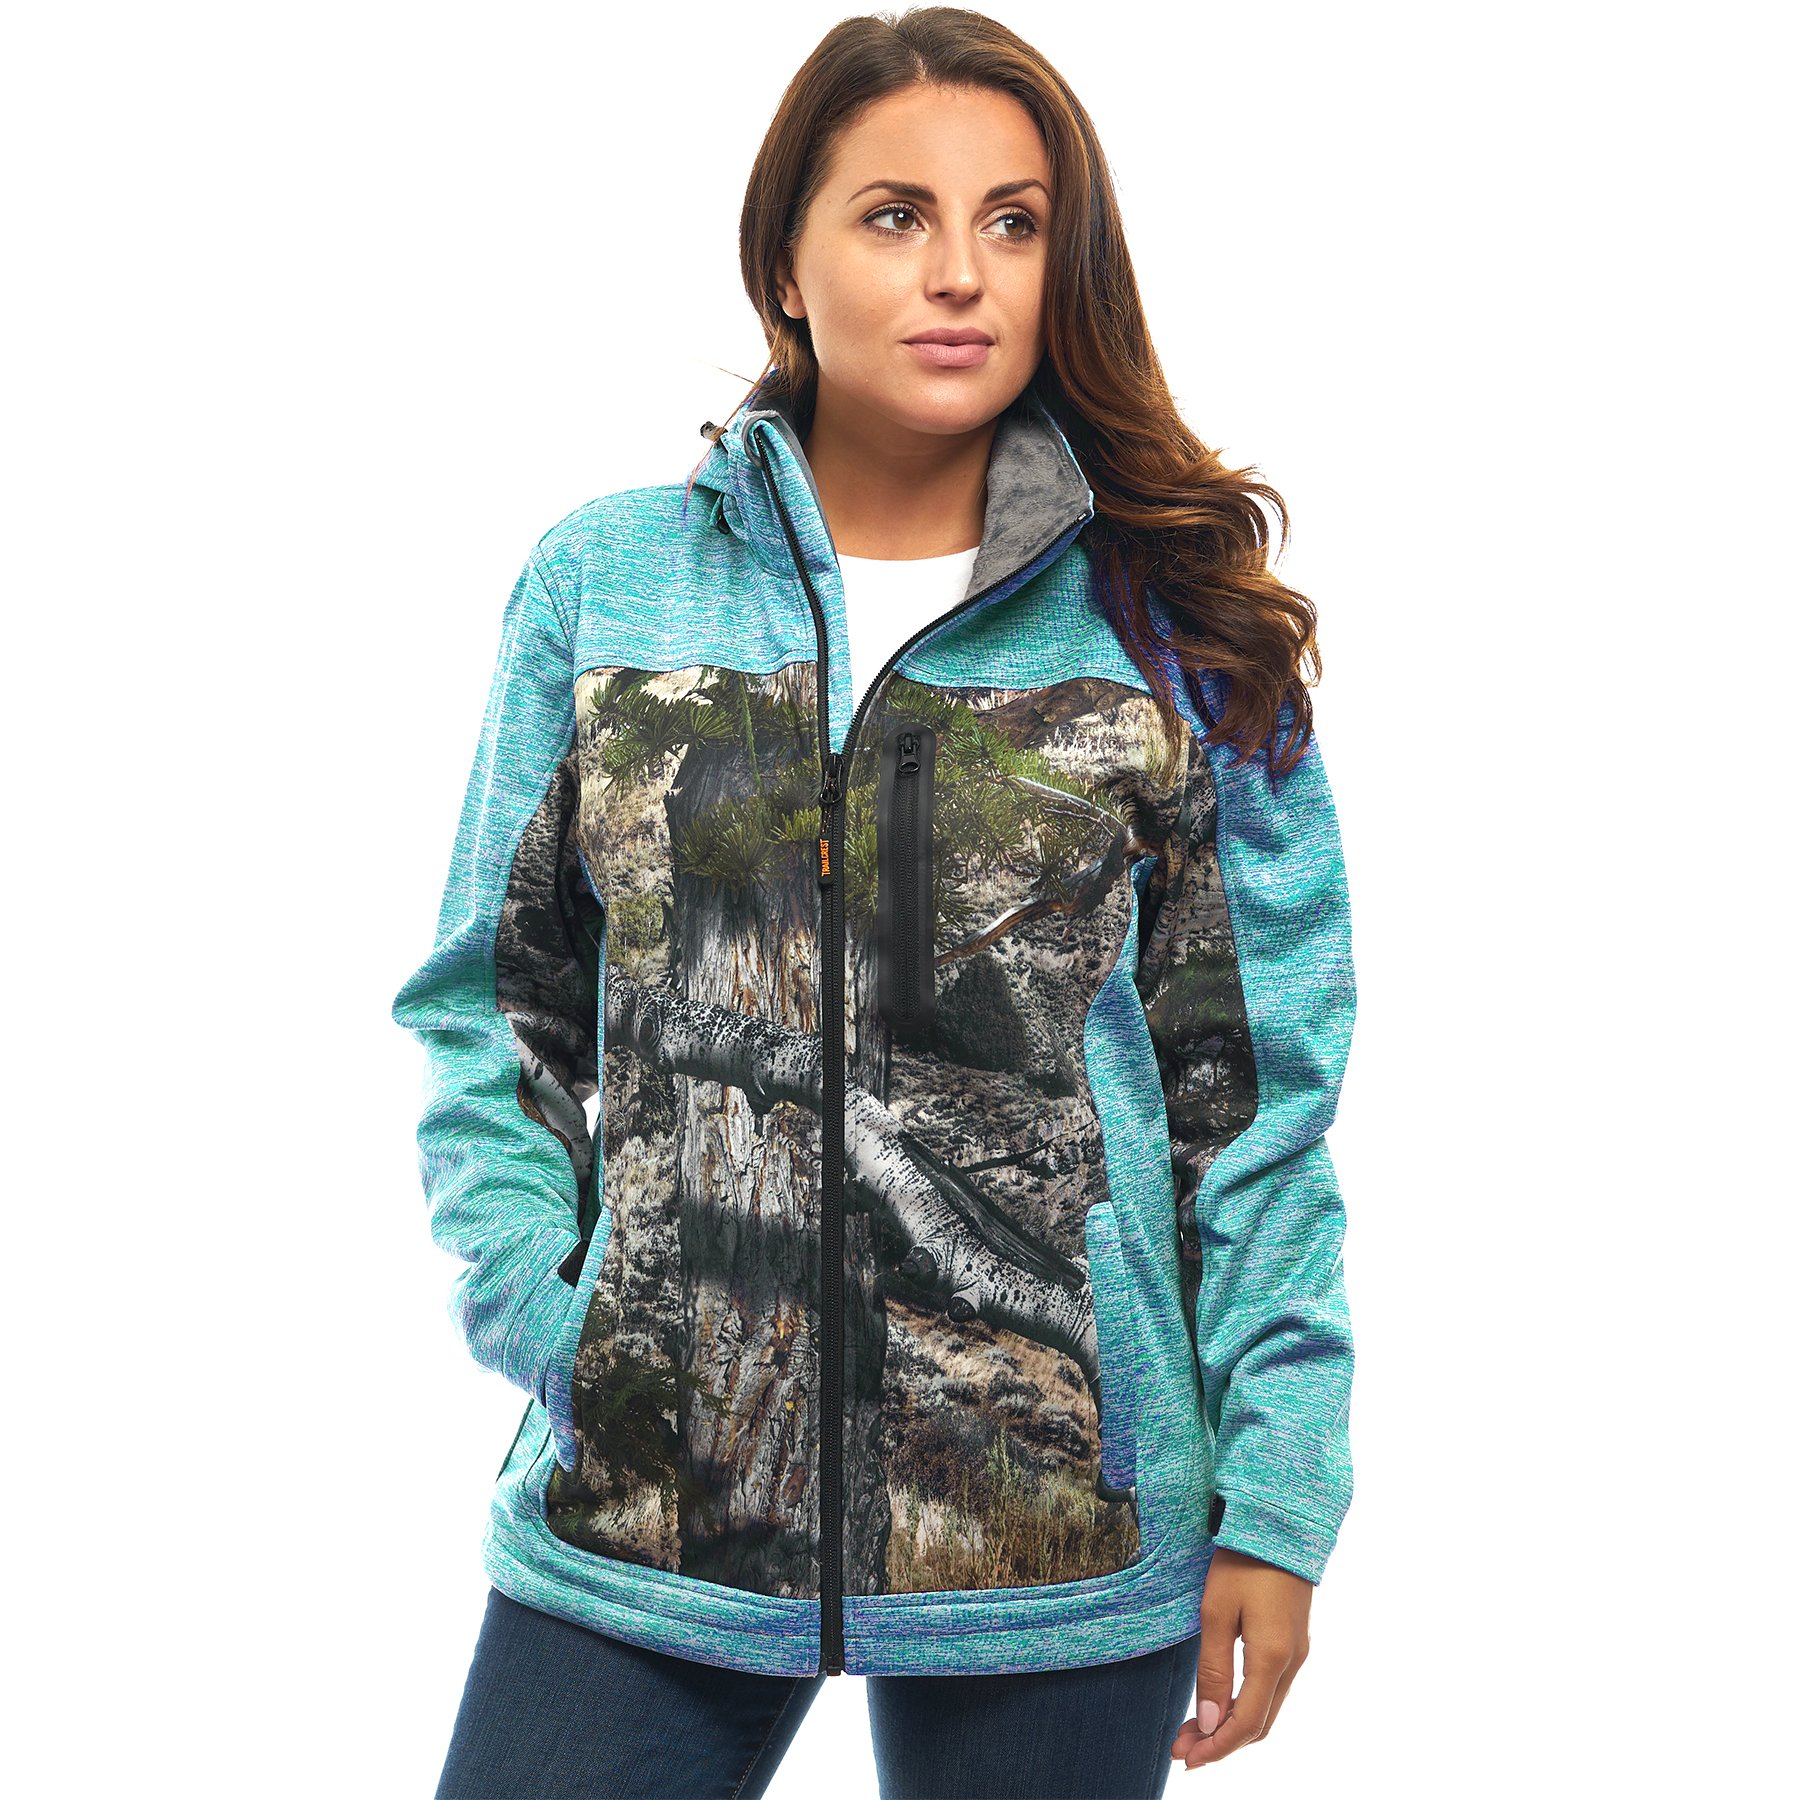 TrailCrest Women's Softshell Jacket, Ultra Soft Plush Lining Mossy Oak Camo Patterns (Teal Heather - Medium)